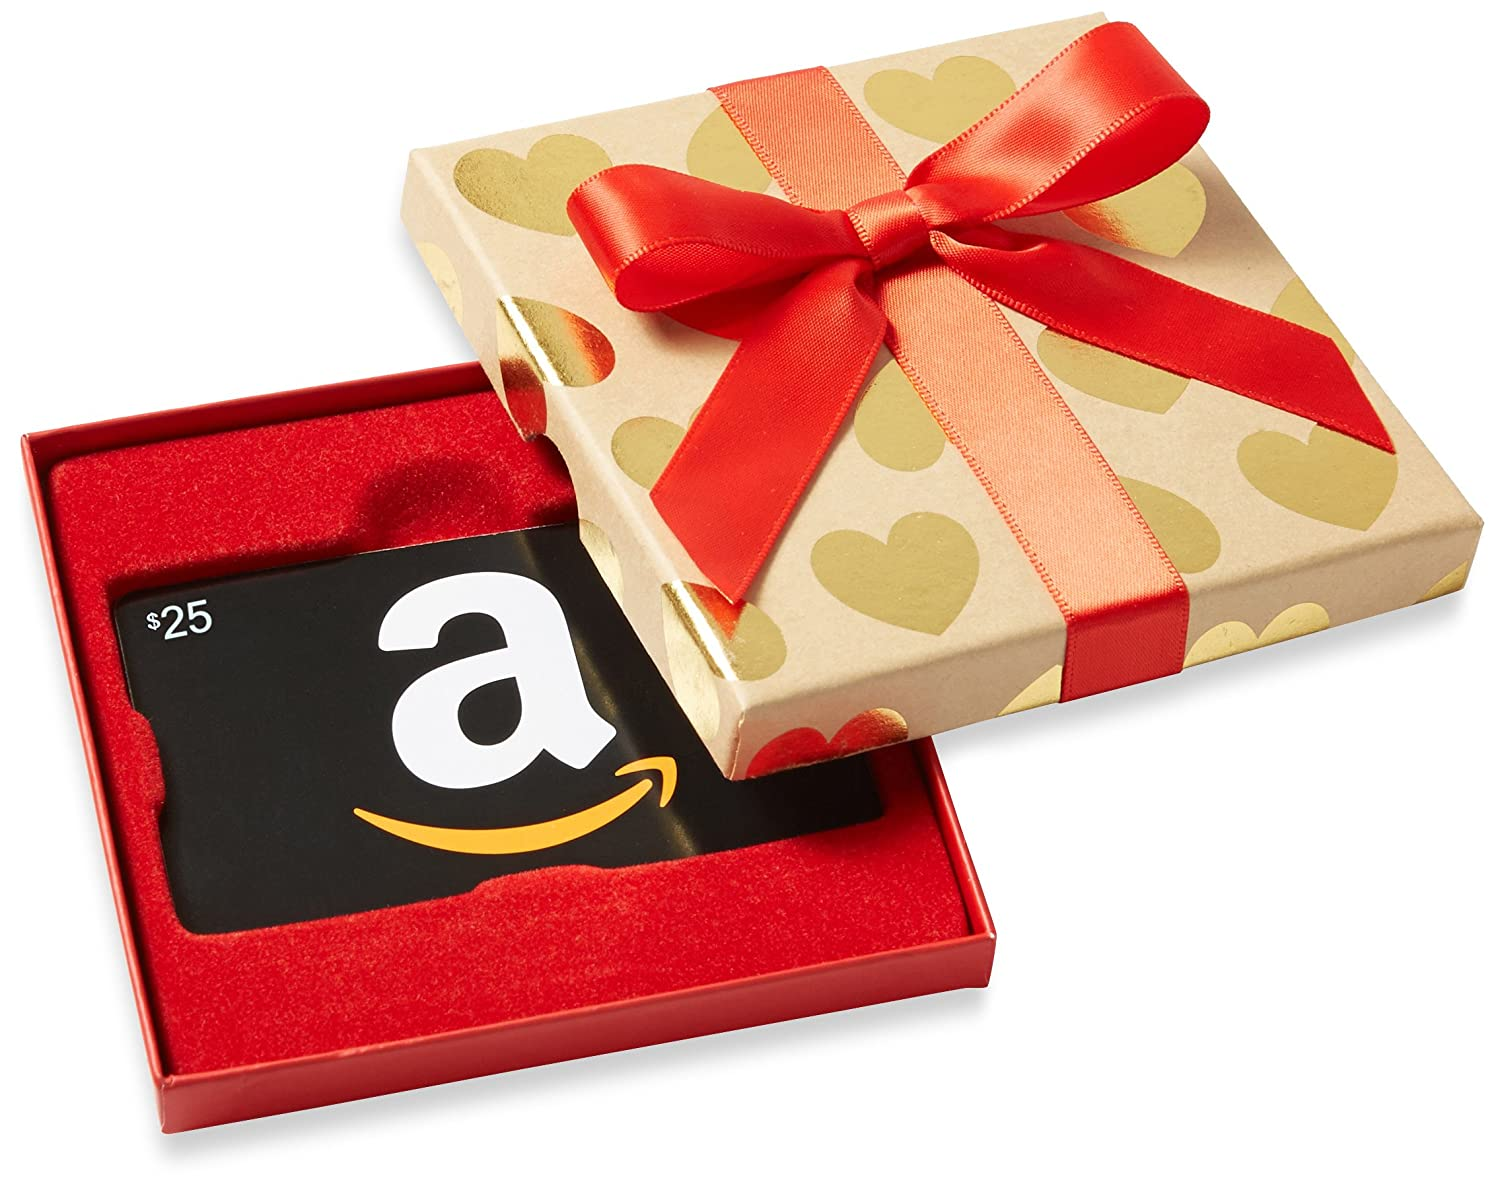 Amazon.com Gift Cards in Gold Hearts Box